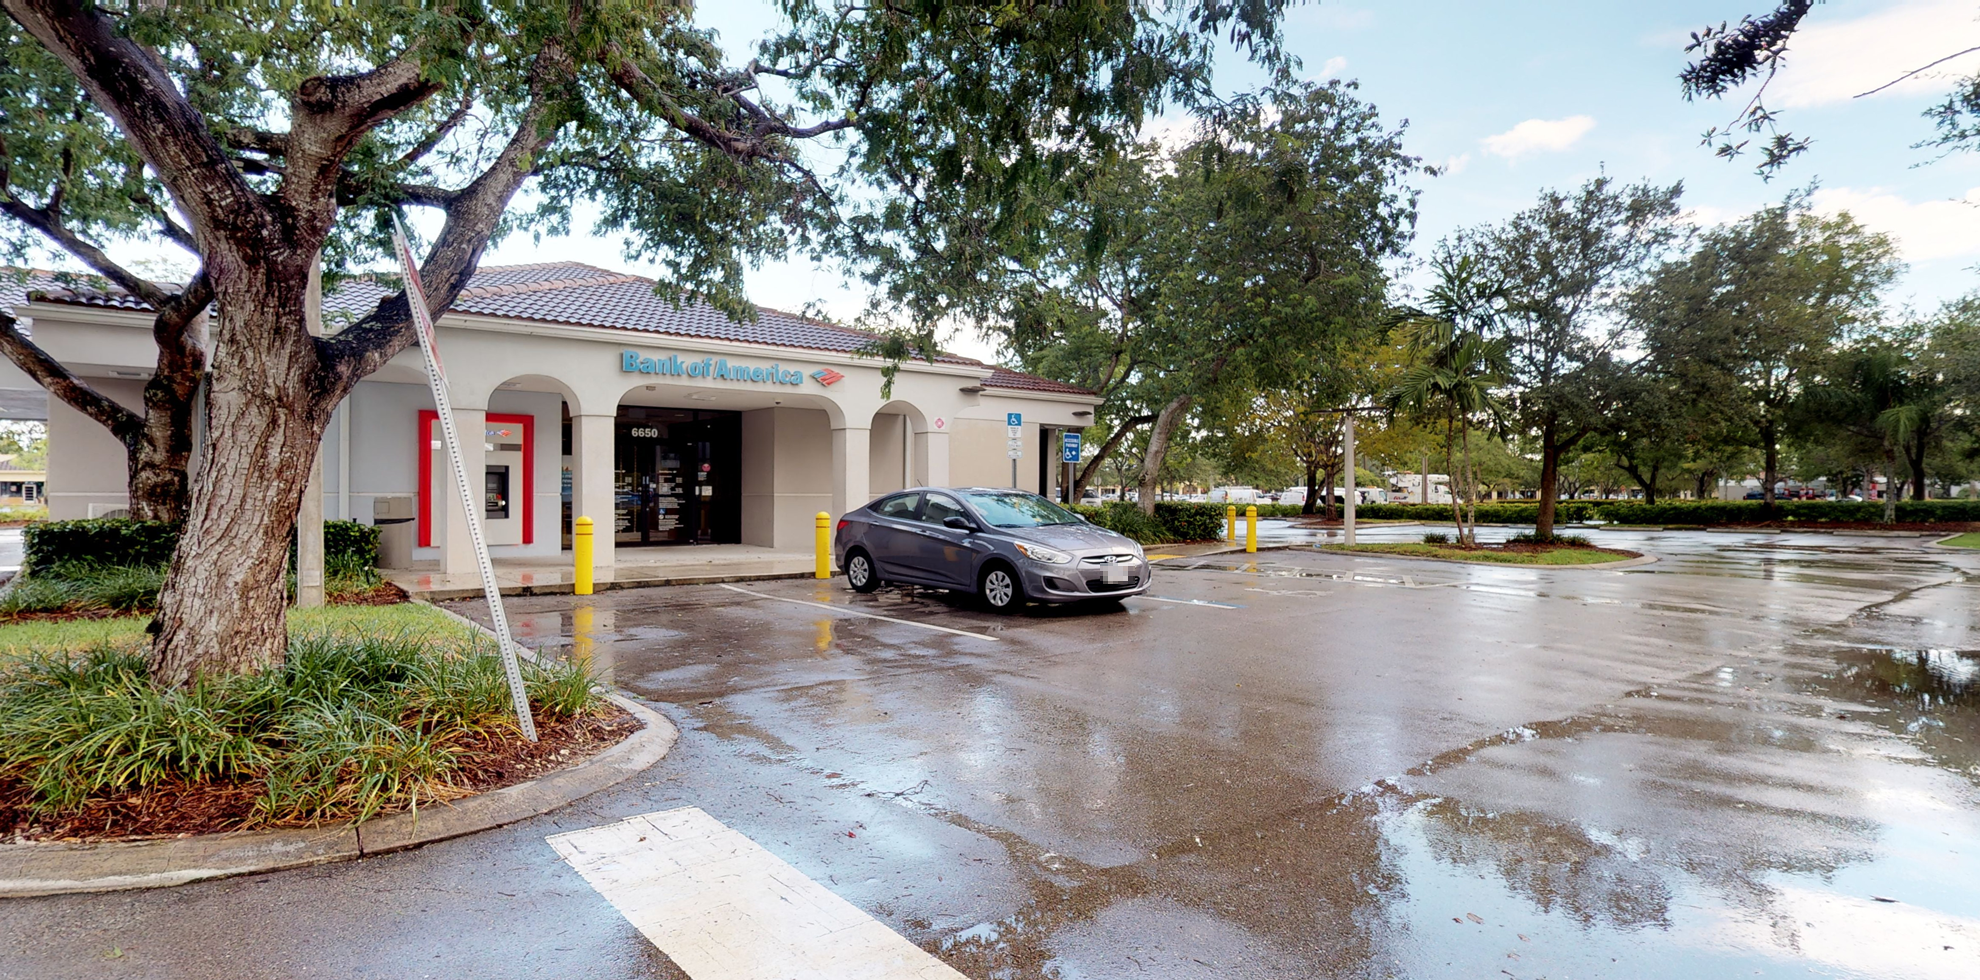 Bank of America financial center with drive-thru ATM   6650 N State Road 7, Coconut Creek, FL 33073